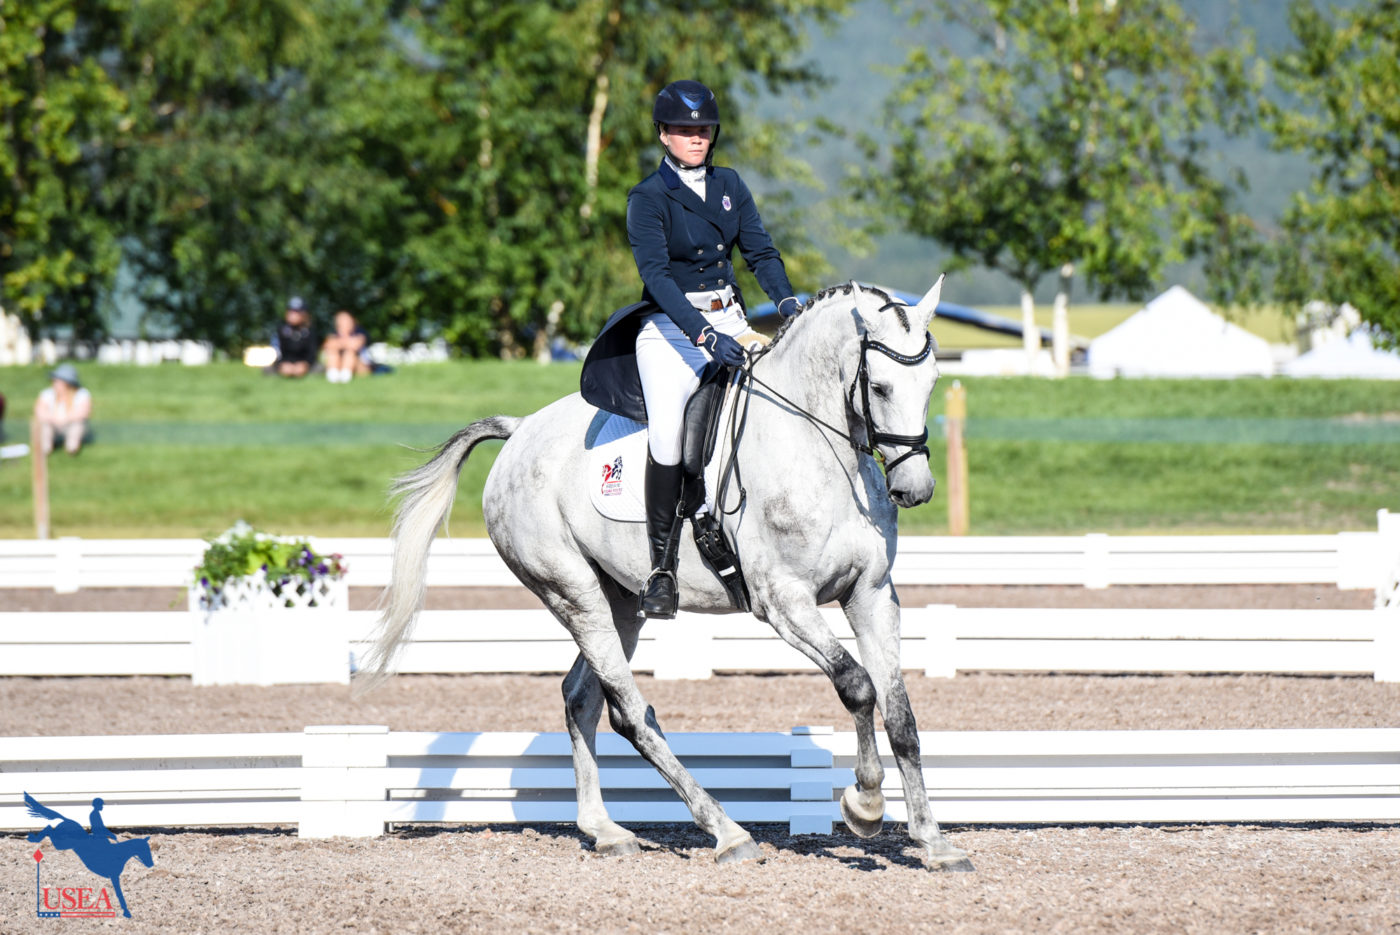 14thT - Greta Schwickert and Charles Owen - 38.1